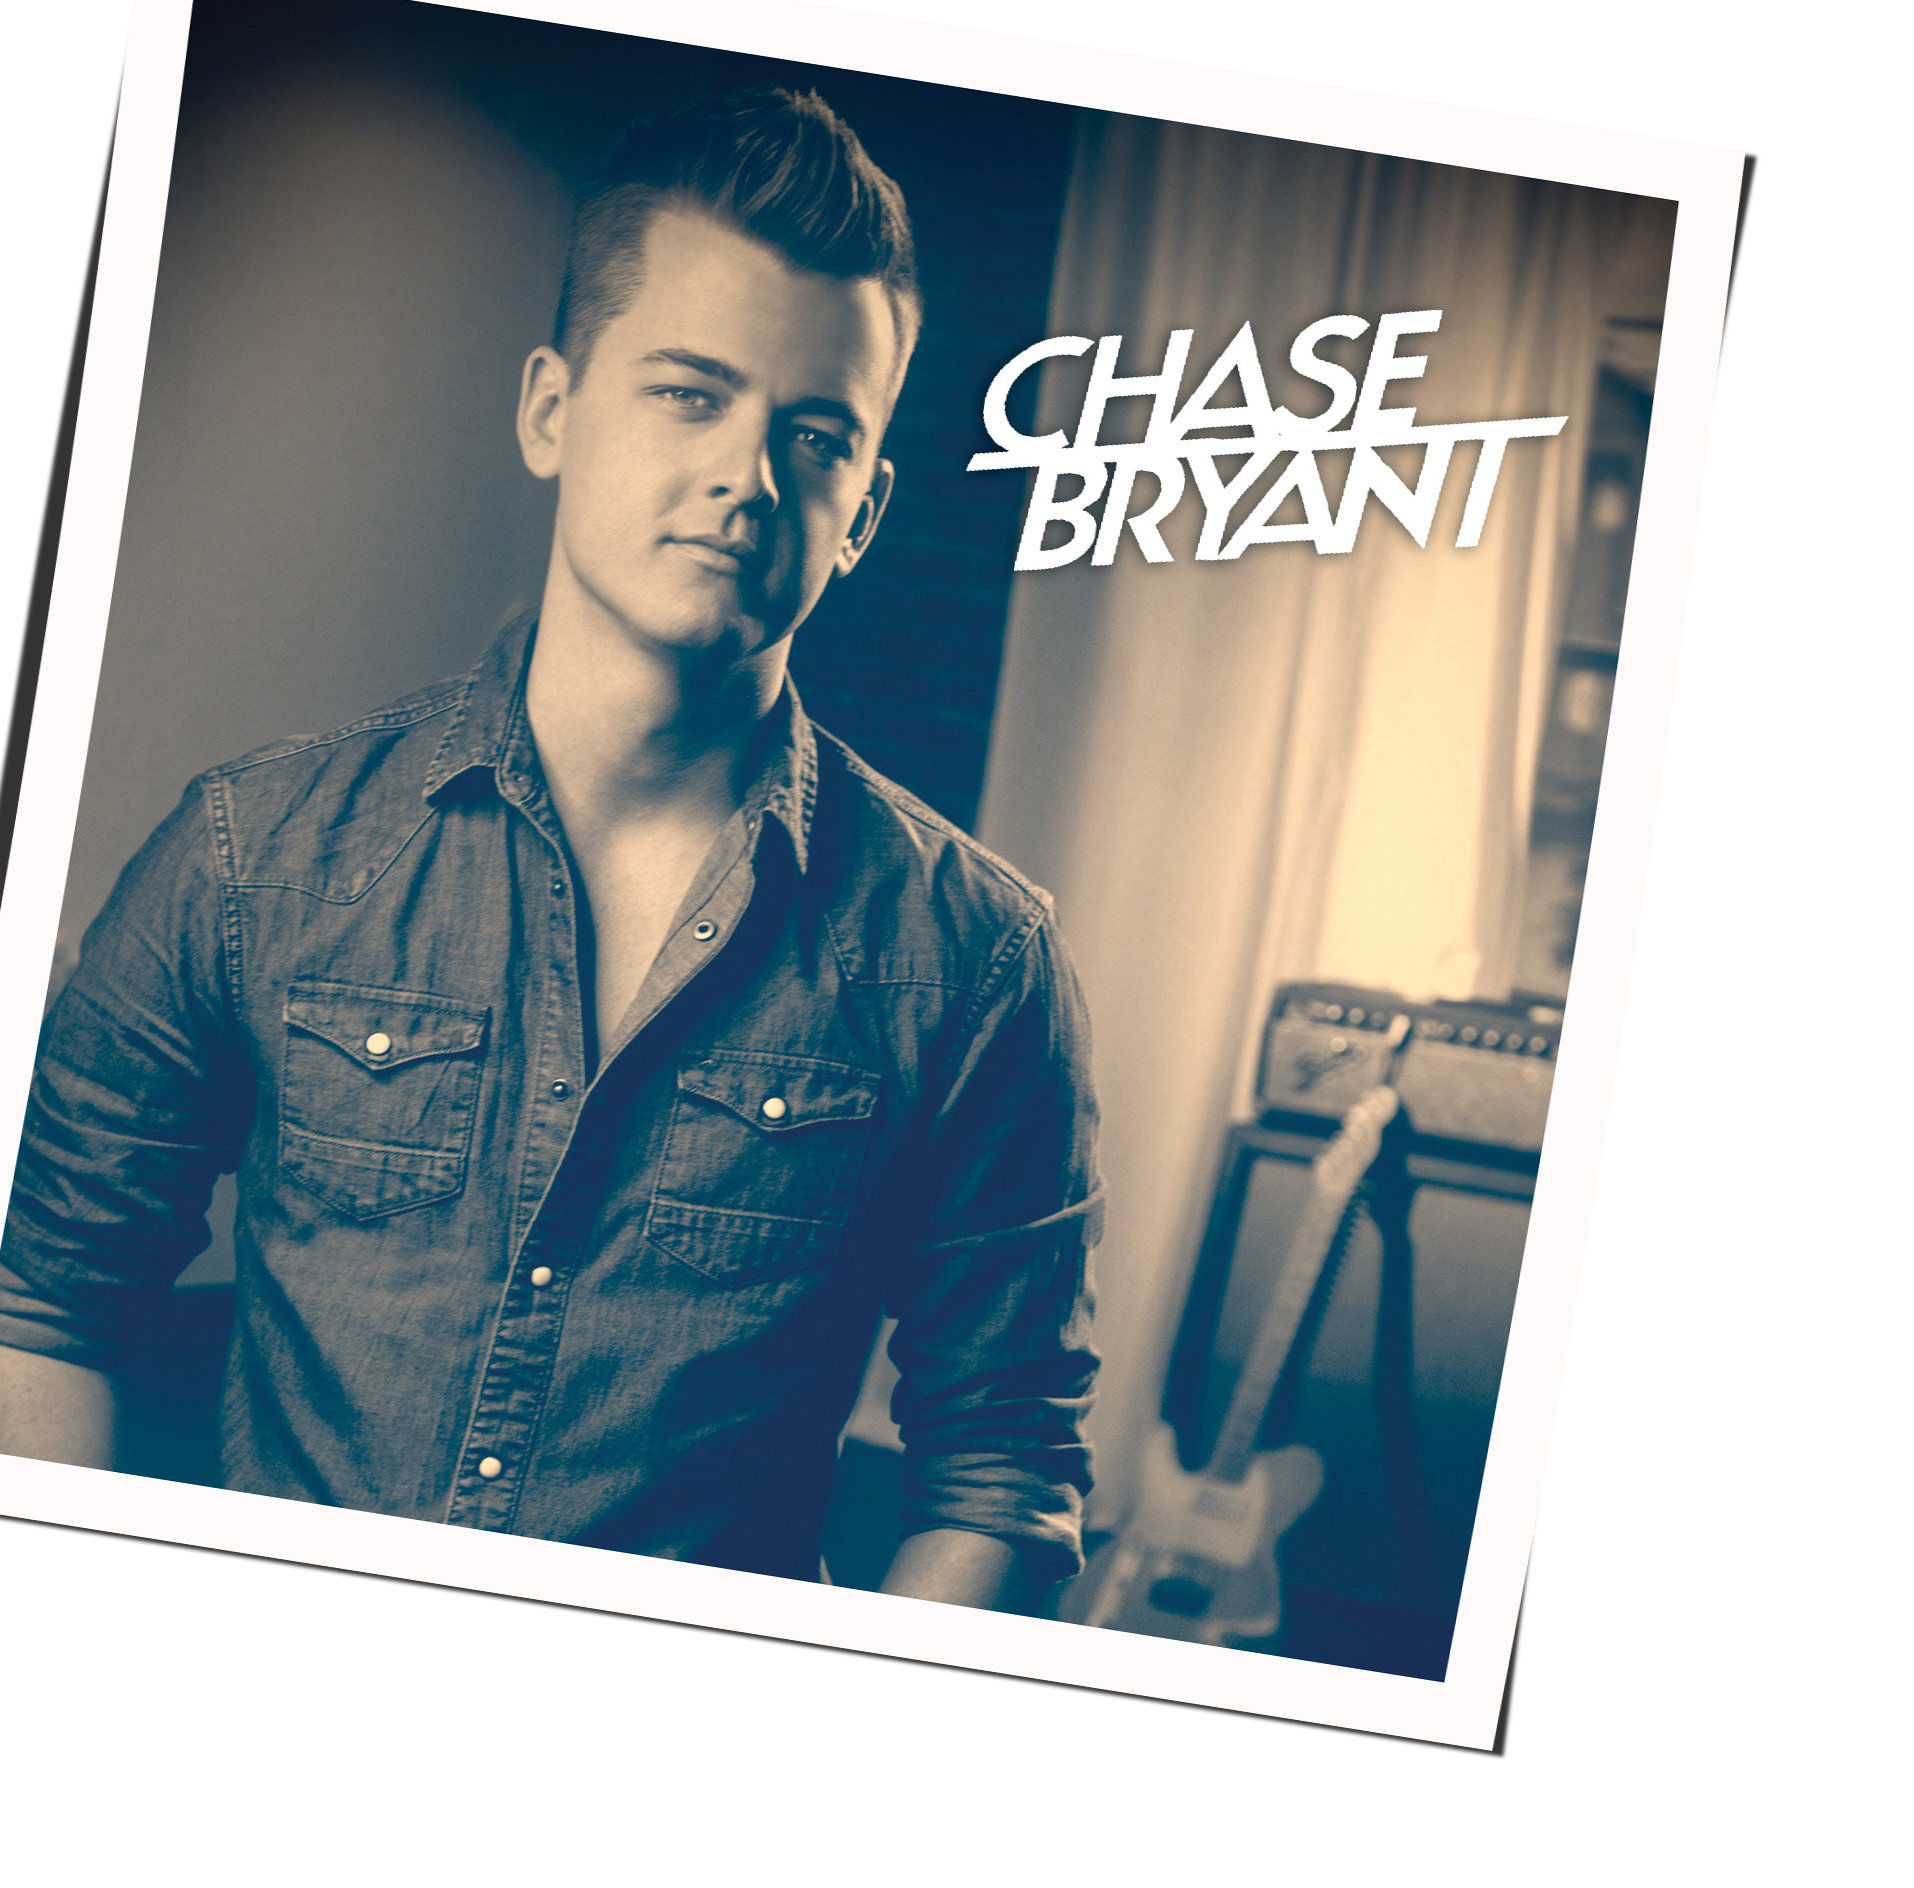 Chase Bryant tabs and guitar chords